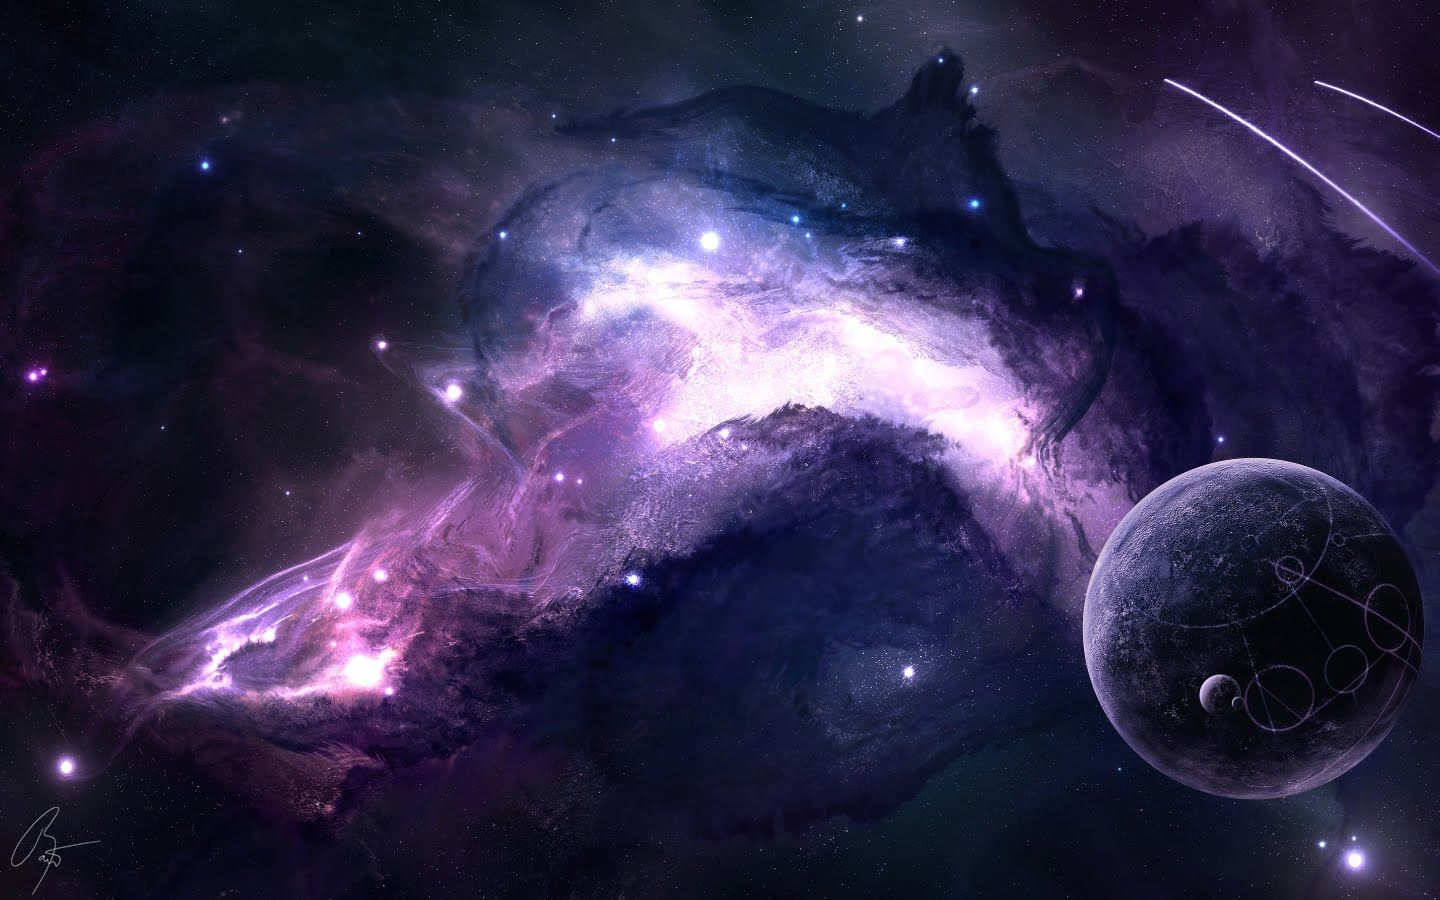 HD Space Wallpaper [1080p+] Wallpaper space, Hd space